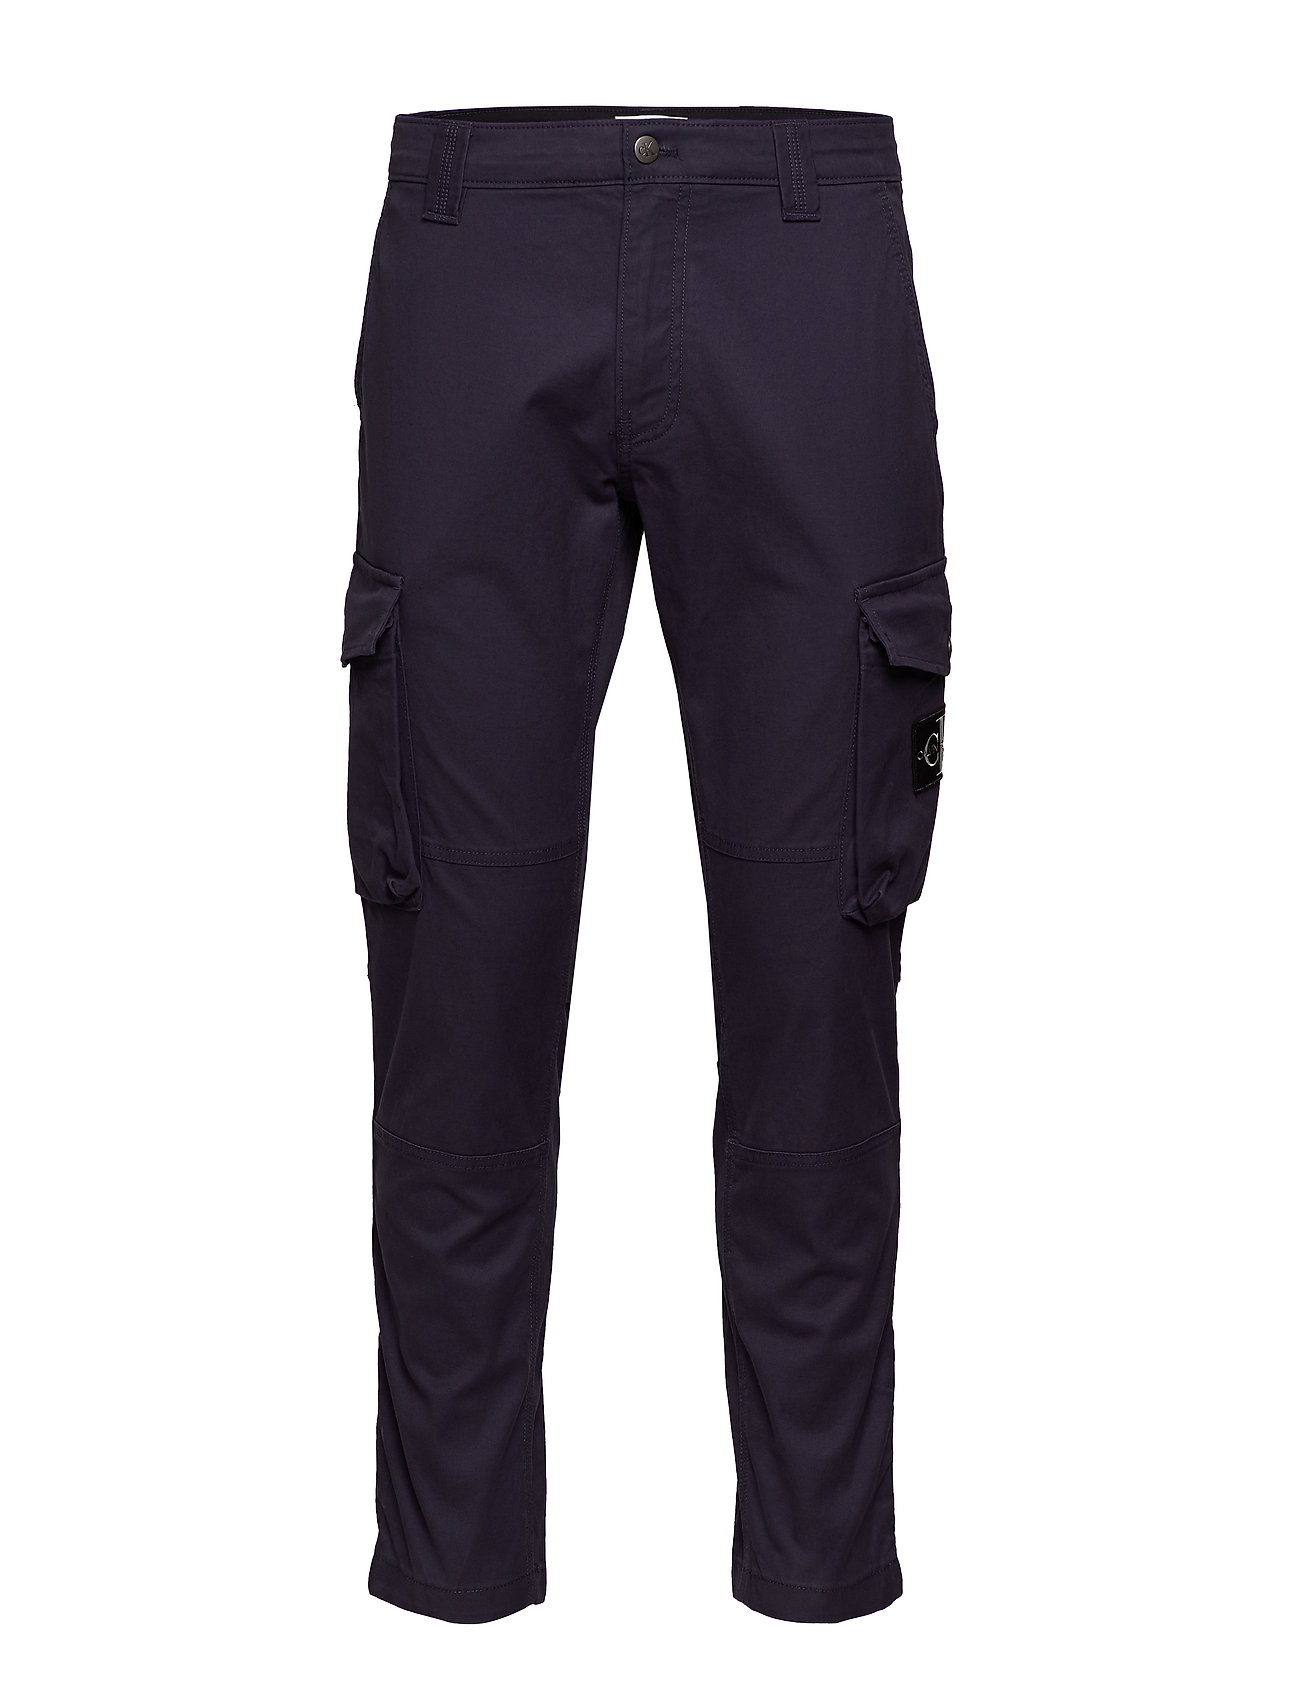 Image of Skinny Washed Cargo Pant Trousers Cargo Pants Blå Calvin Klein Jeans (3288856281)